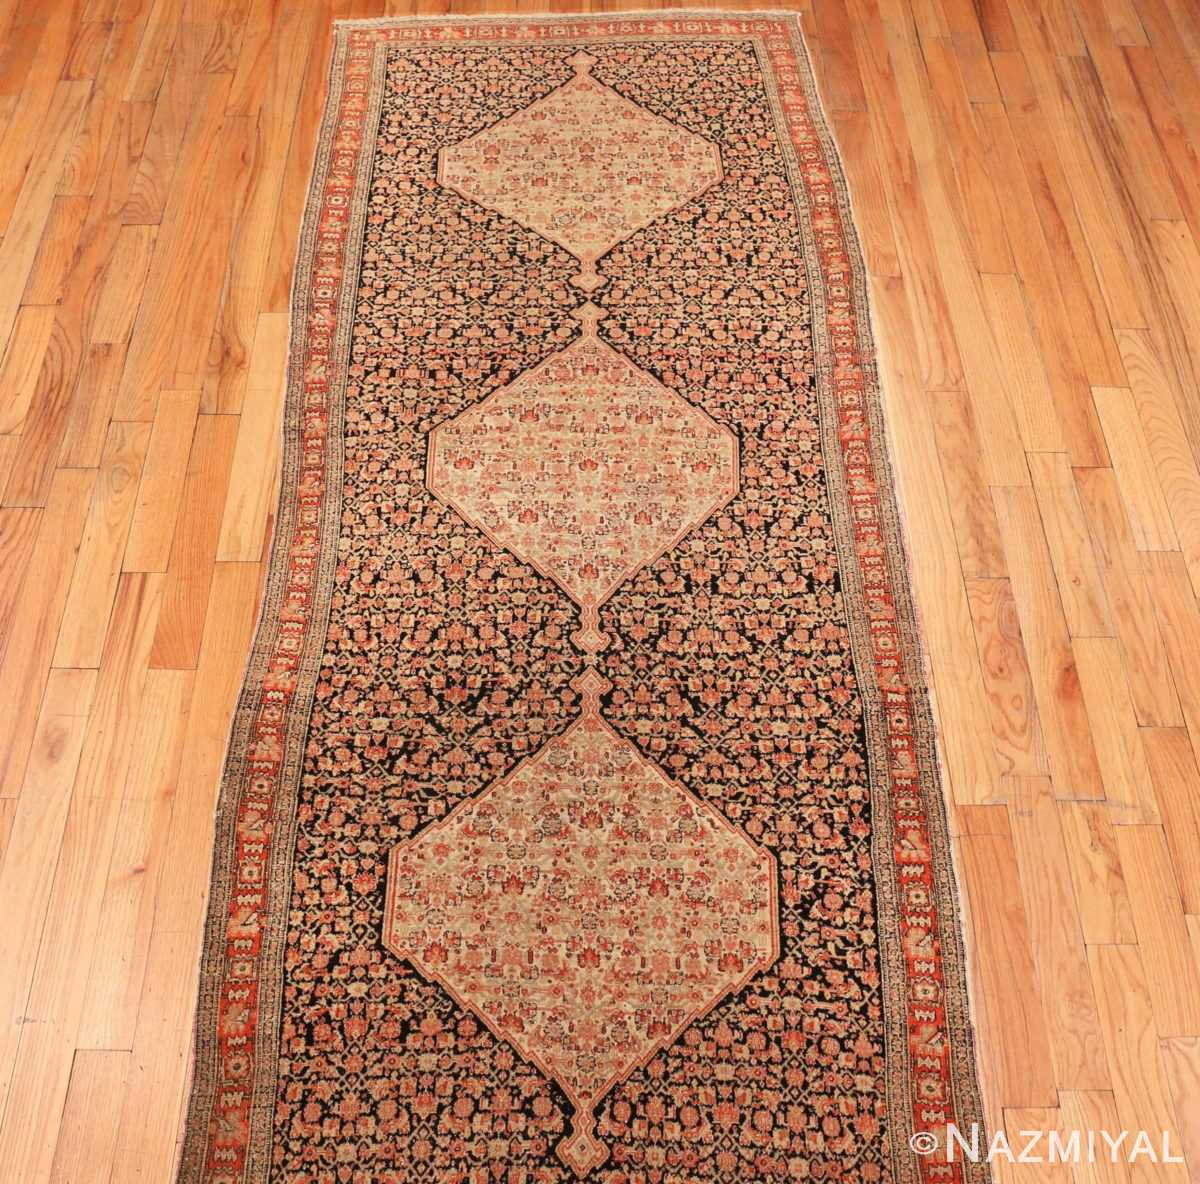 Picture of the Front of Antique Persian Senneh Runner Rug 48089